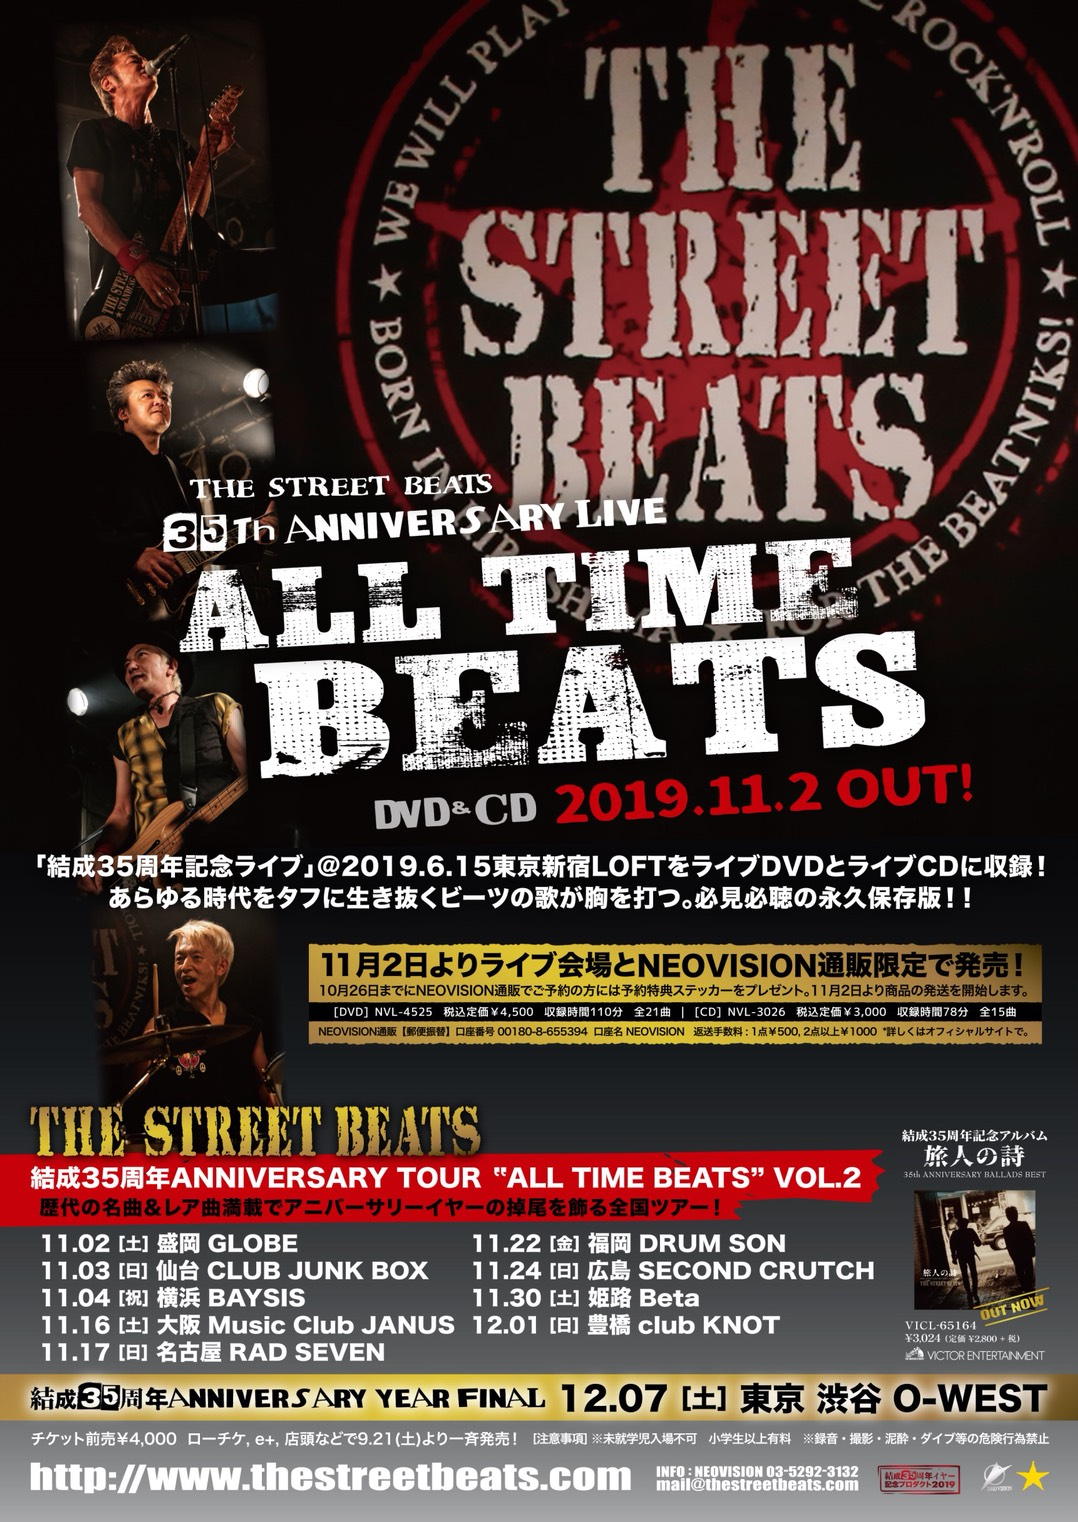 "THE STREET BEATS 結成35周年 ANNIVERSARY TOUR ""ALL TIME BEATS VOL.2"""